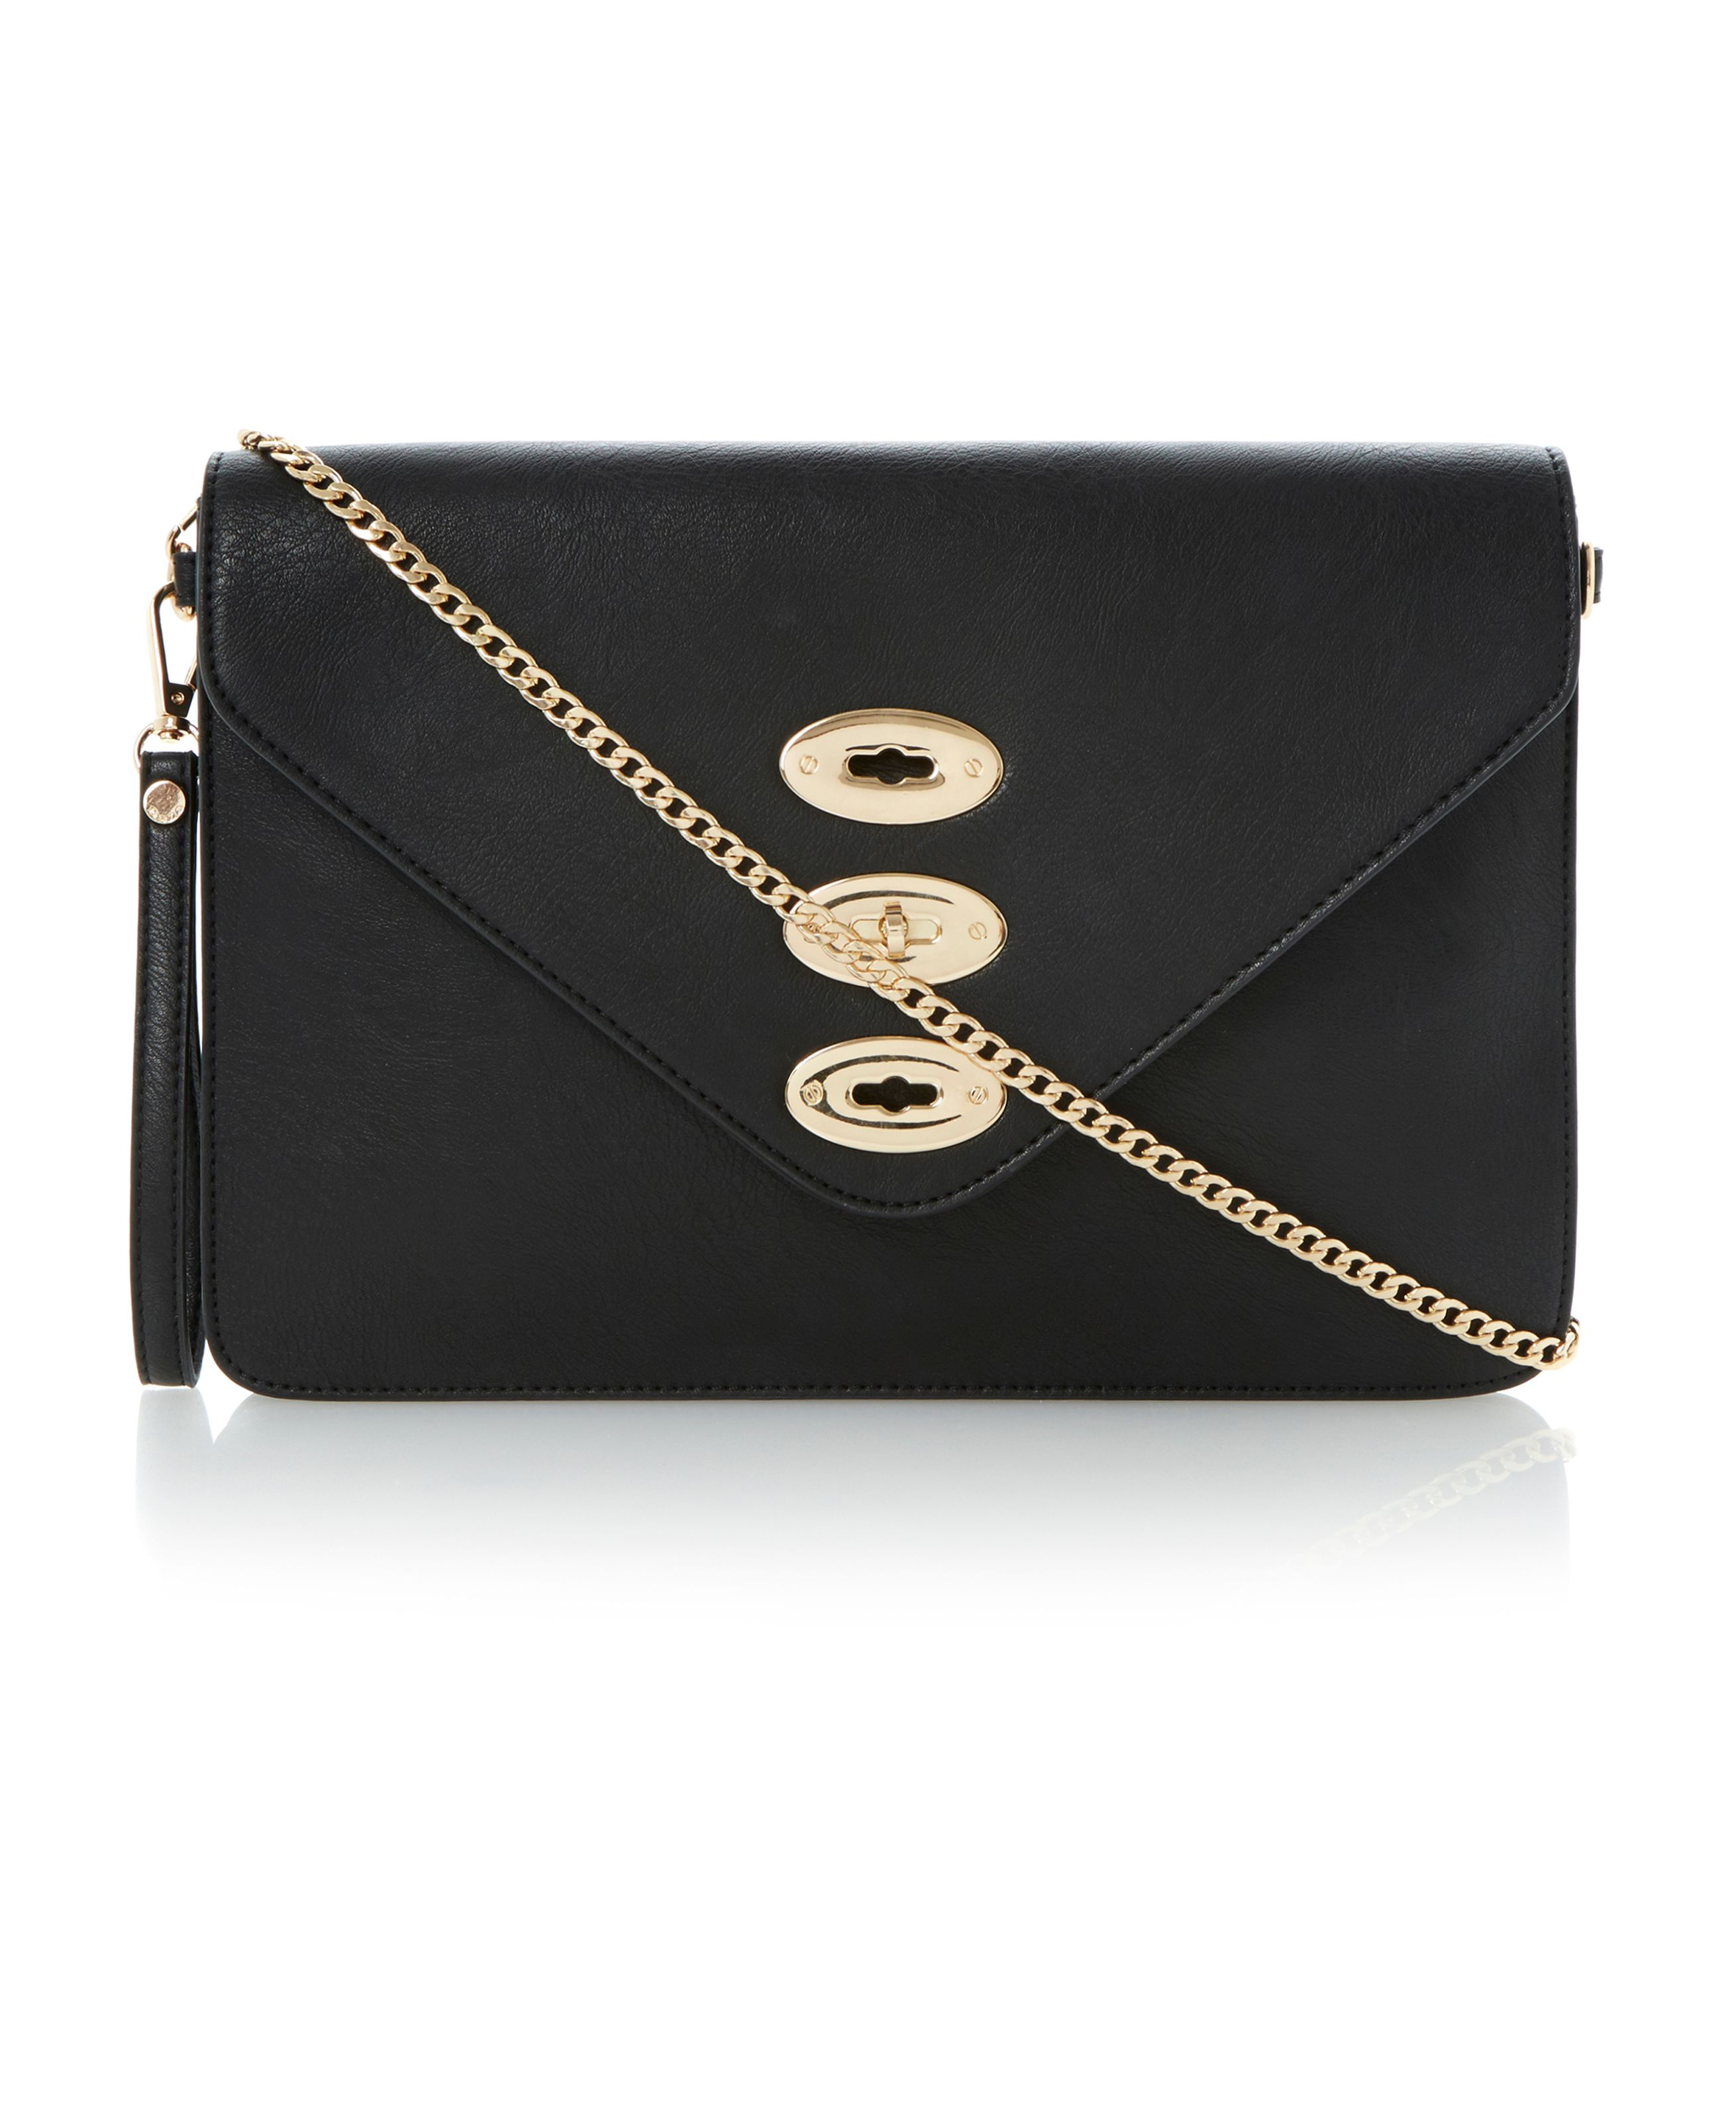 Erin clutch bag